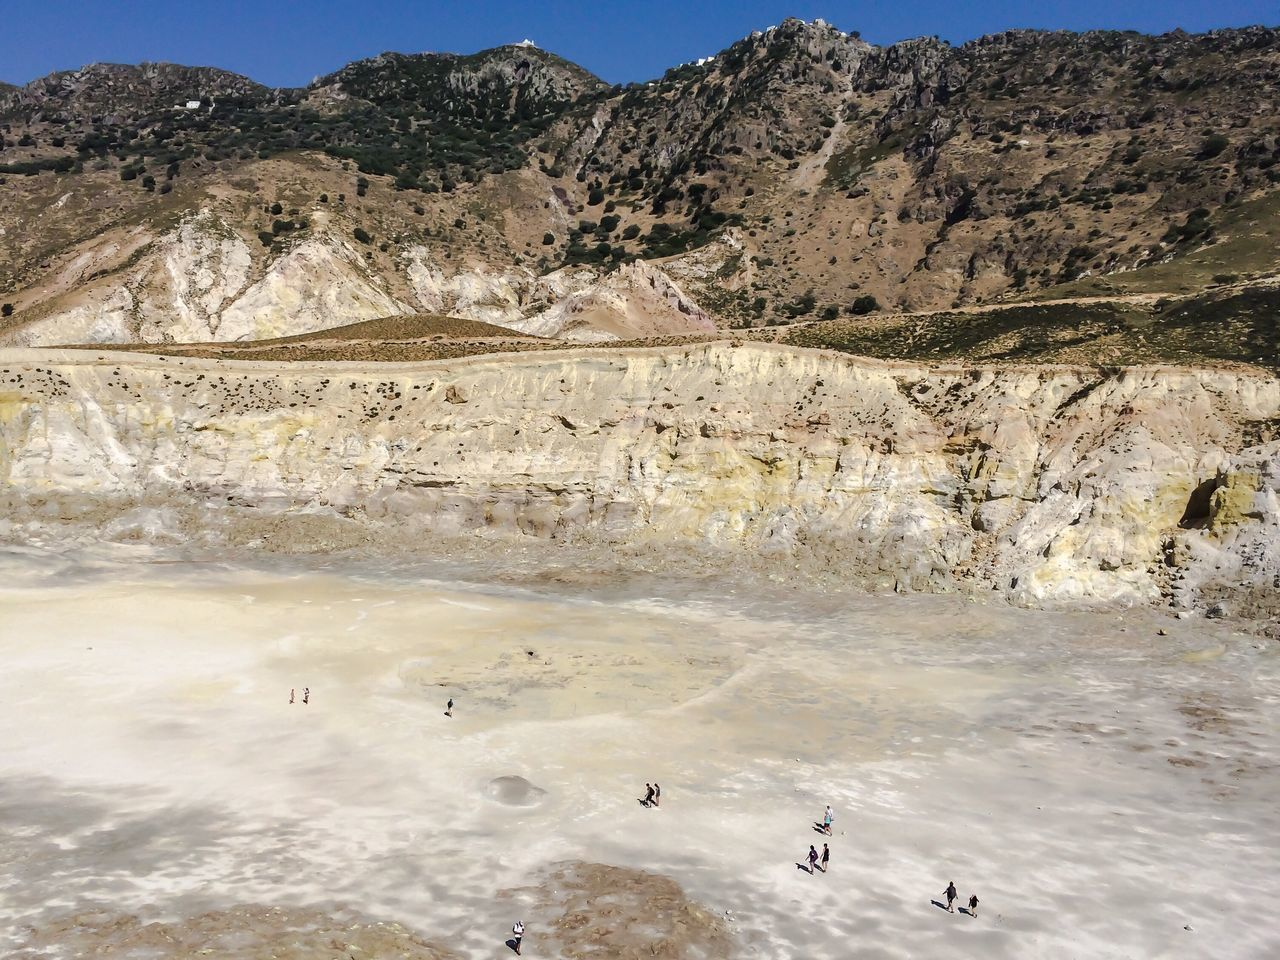 Crater, Nisos Nisiros Nisiro Nisiros Greece Greece Dodecanese Aegean Volcano Crater Volcanic  Volcanic Landscape Holidays Traveling Travelling Travel Trip Voyage Island Tourism Tourists Tourist Attraction